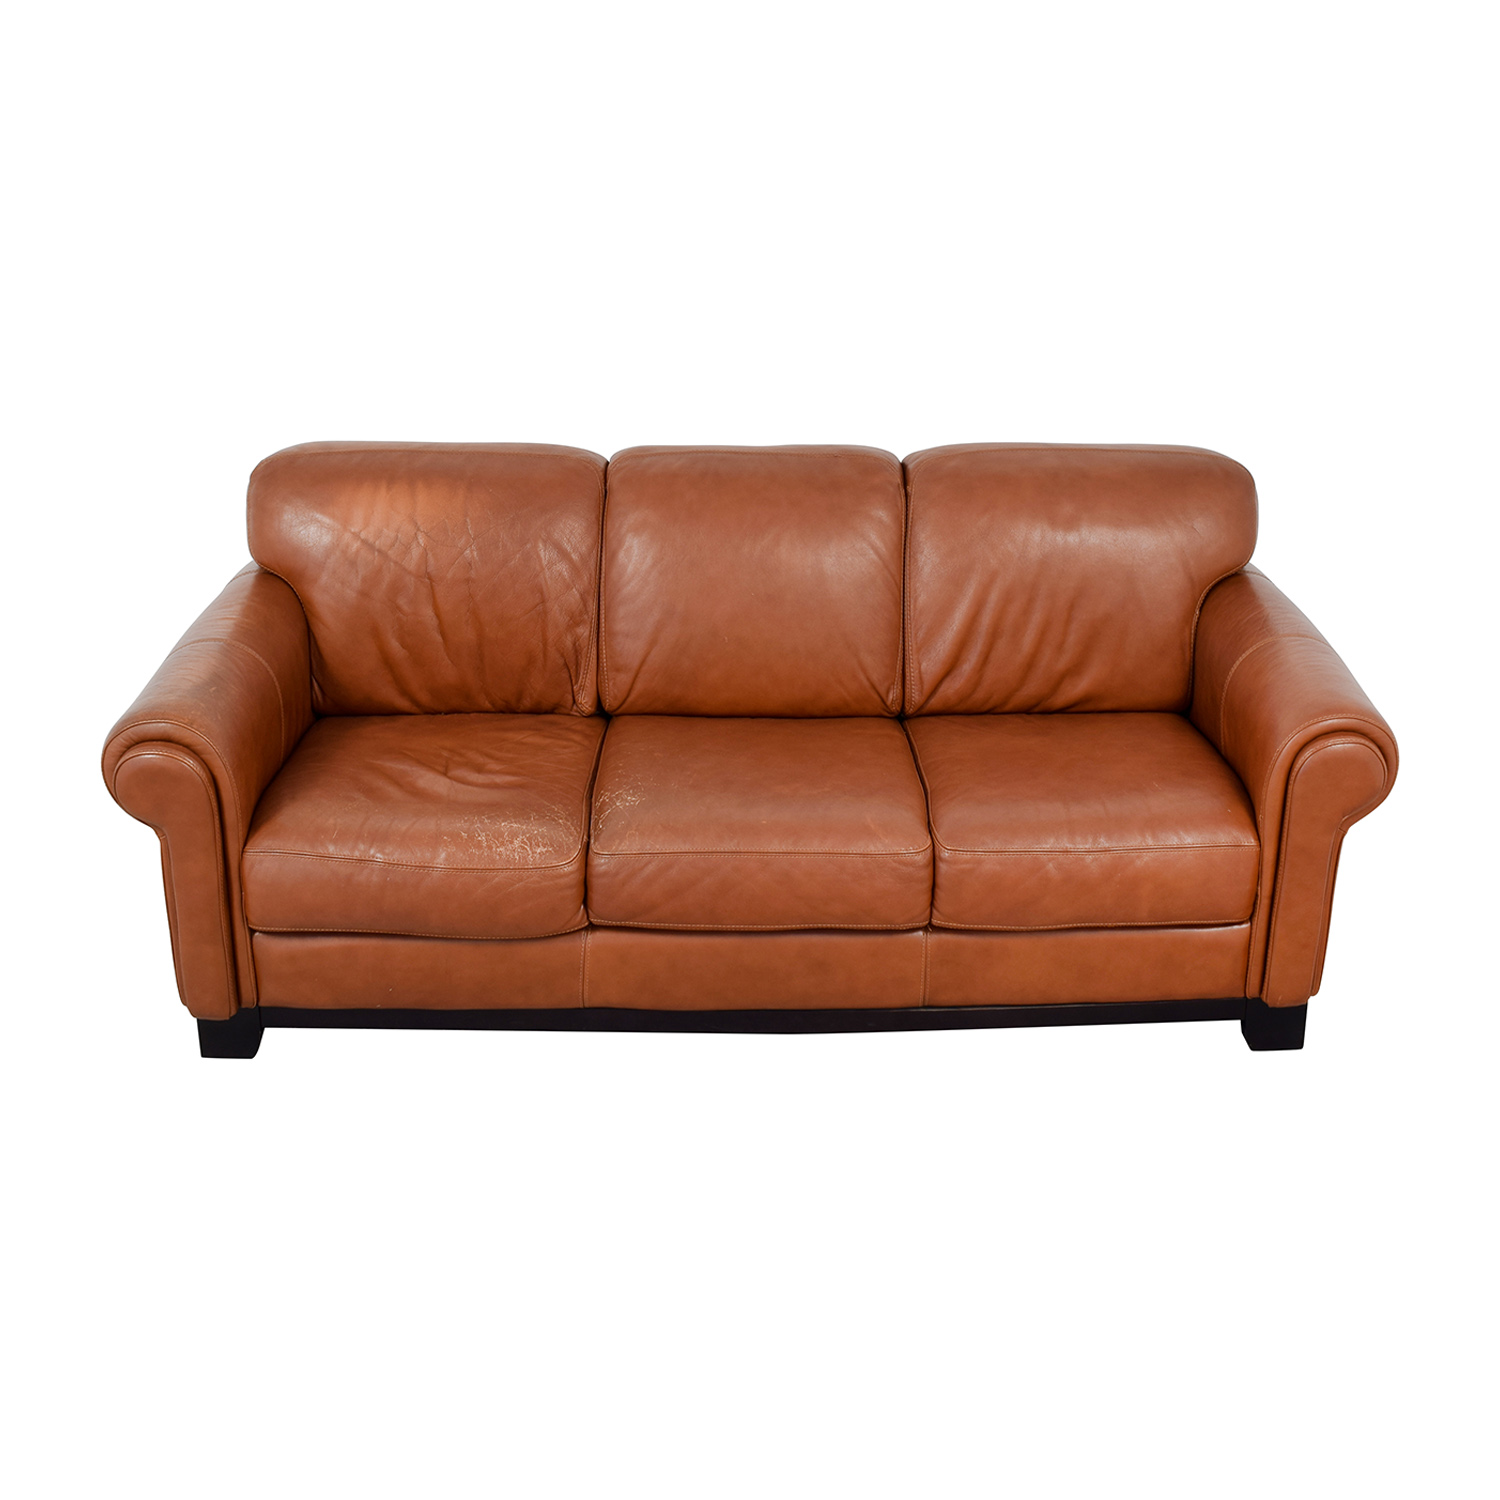 Macys Couch: Macy's Macy's Cognac Three-Cushion Couch / Sofas